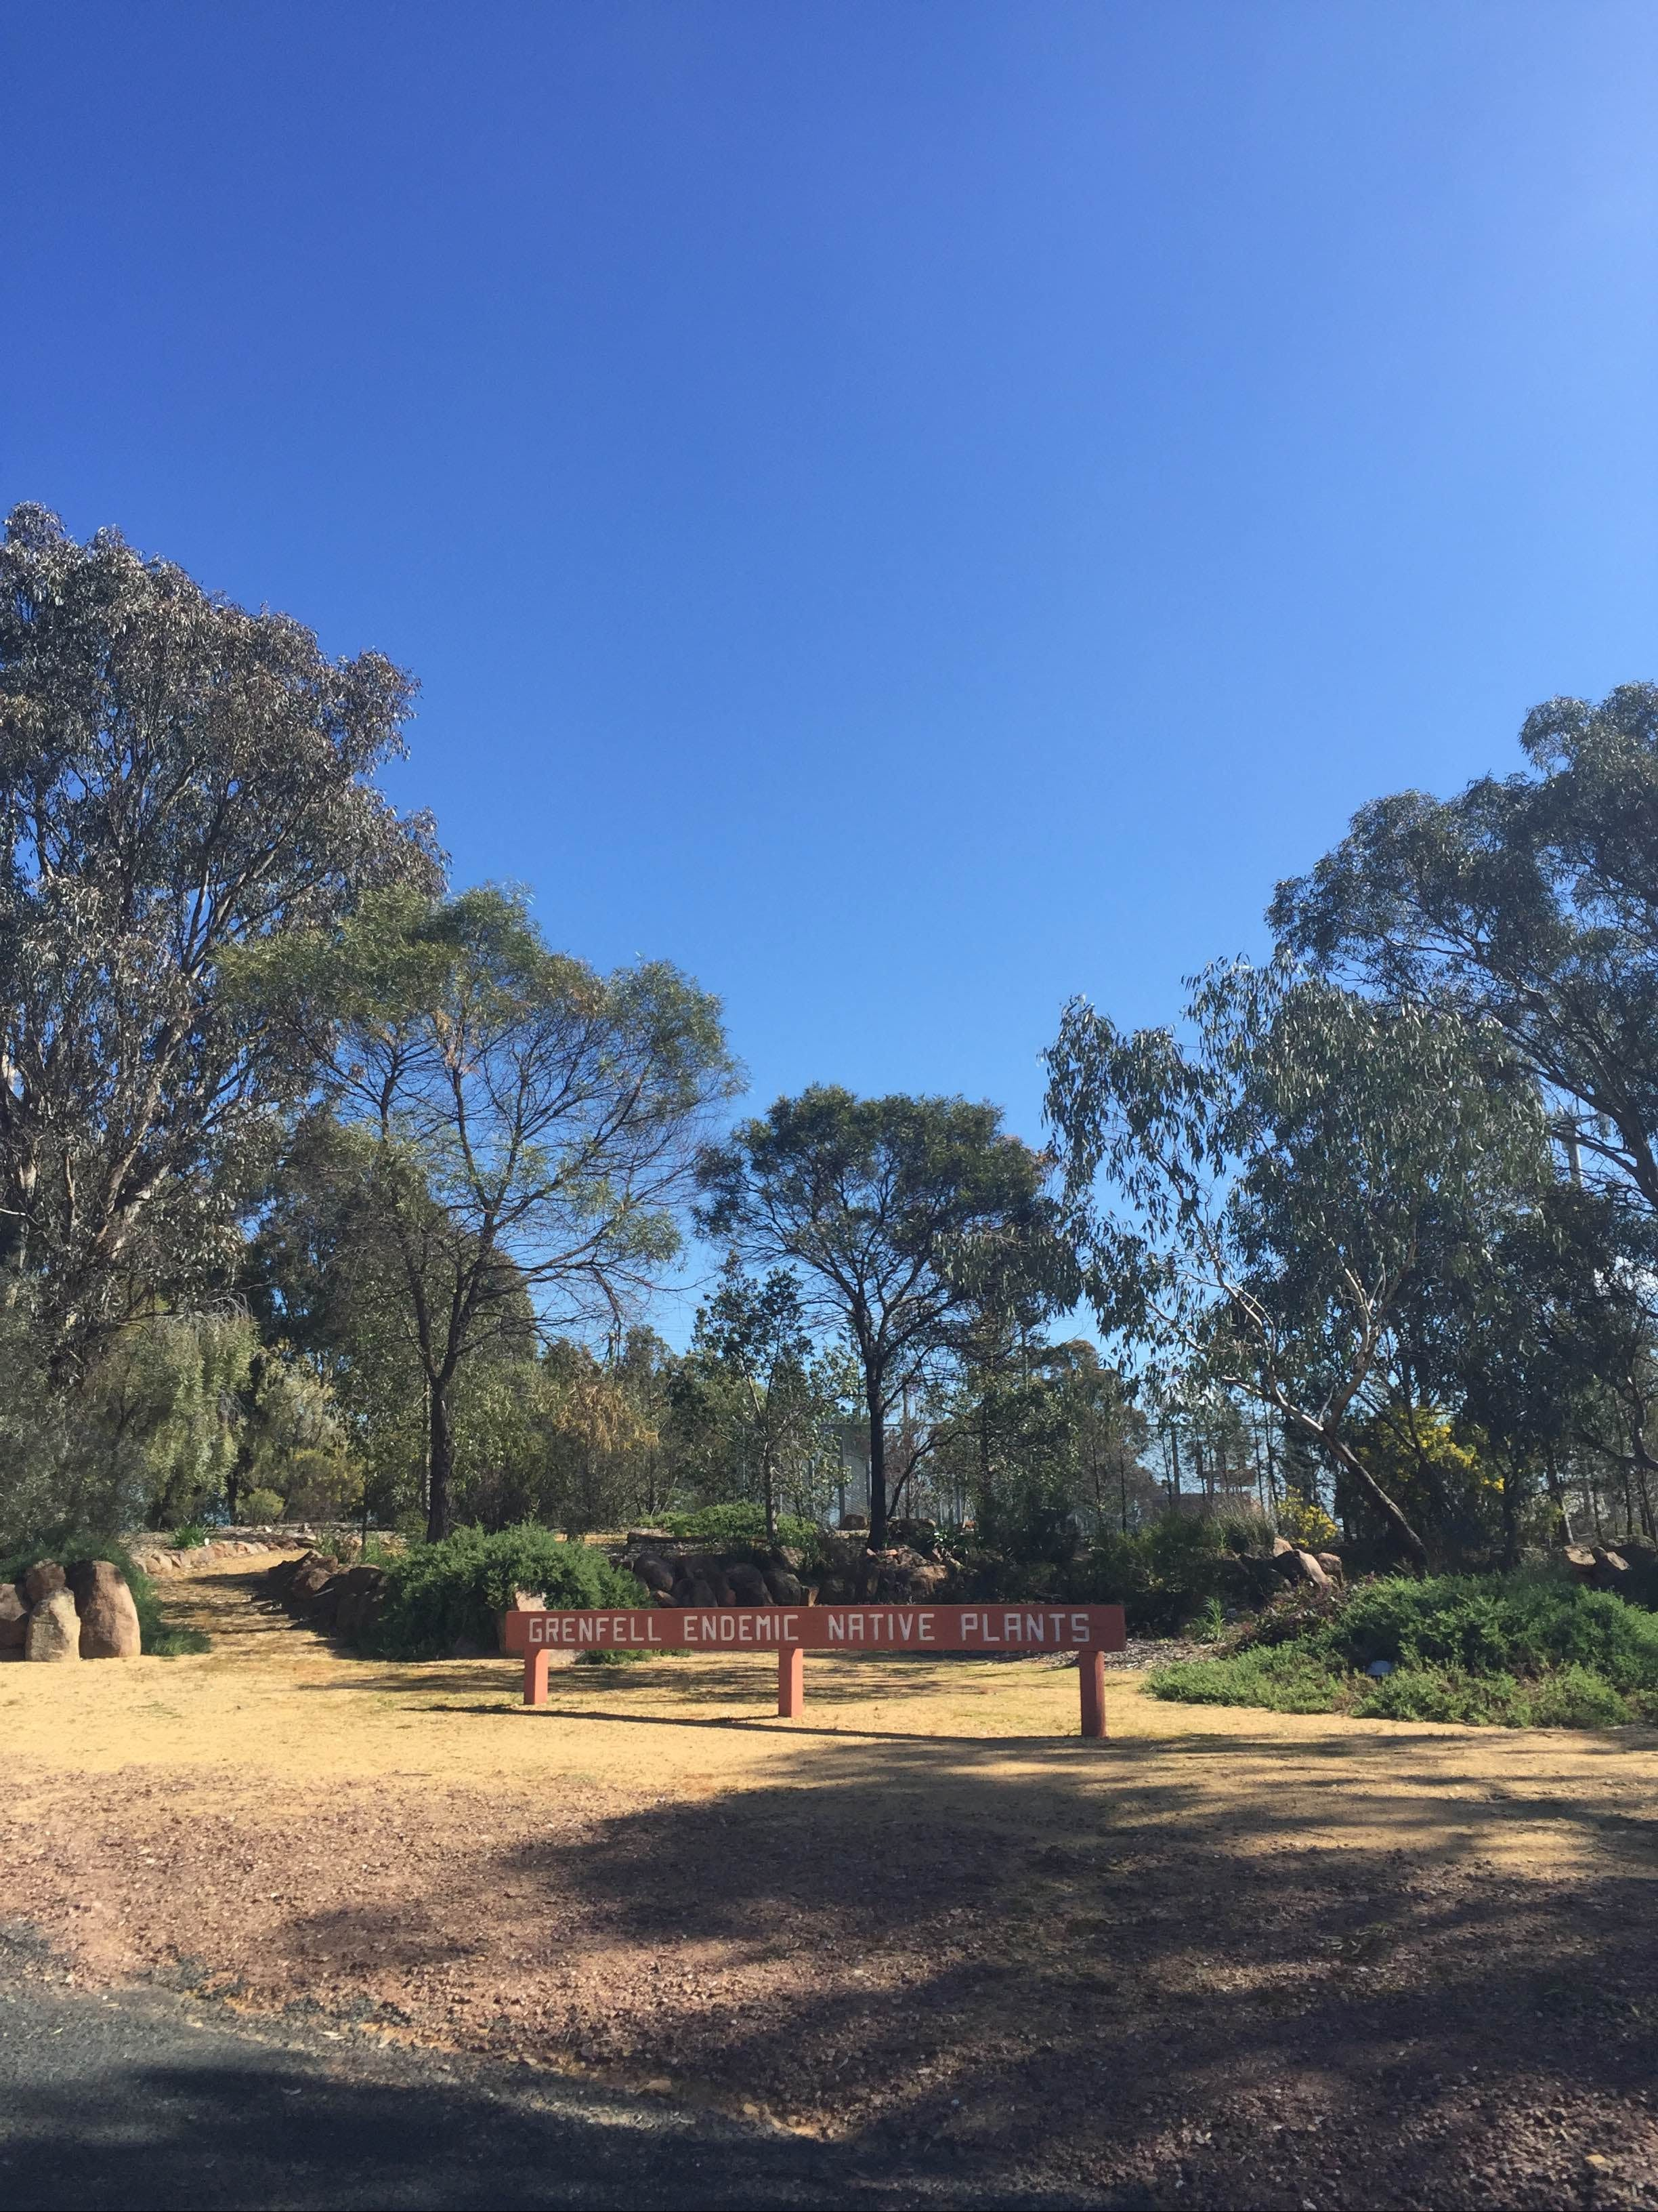 Grenfell Endemic Garden - Tourism Gold Coast